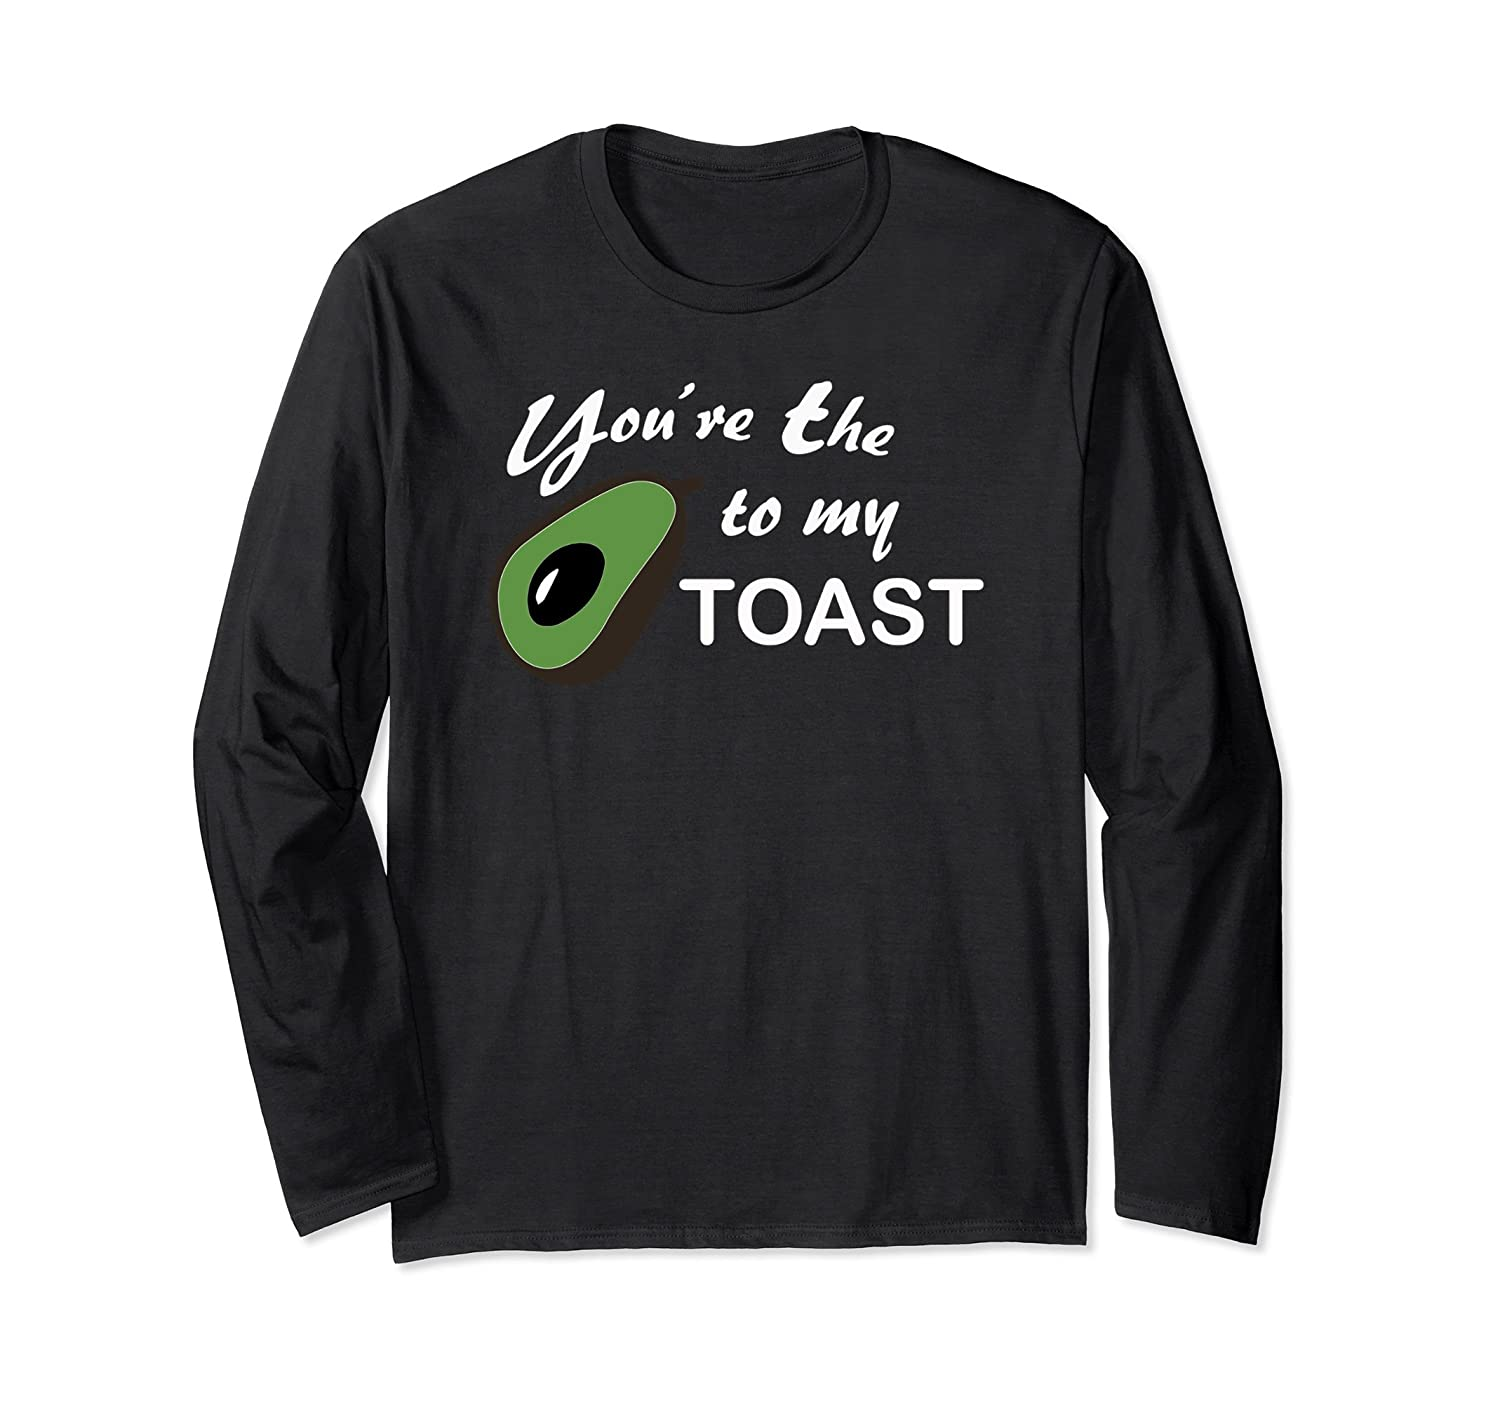 You're The Avocado to my Toast Funny Long Sleeve T-shirt-TH